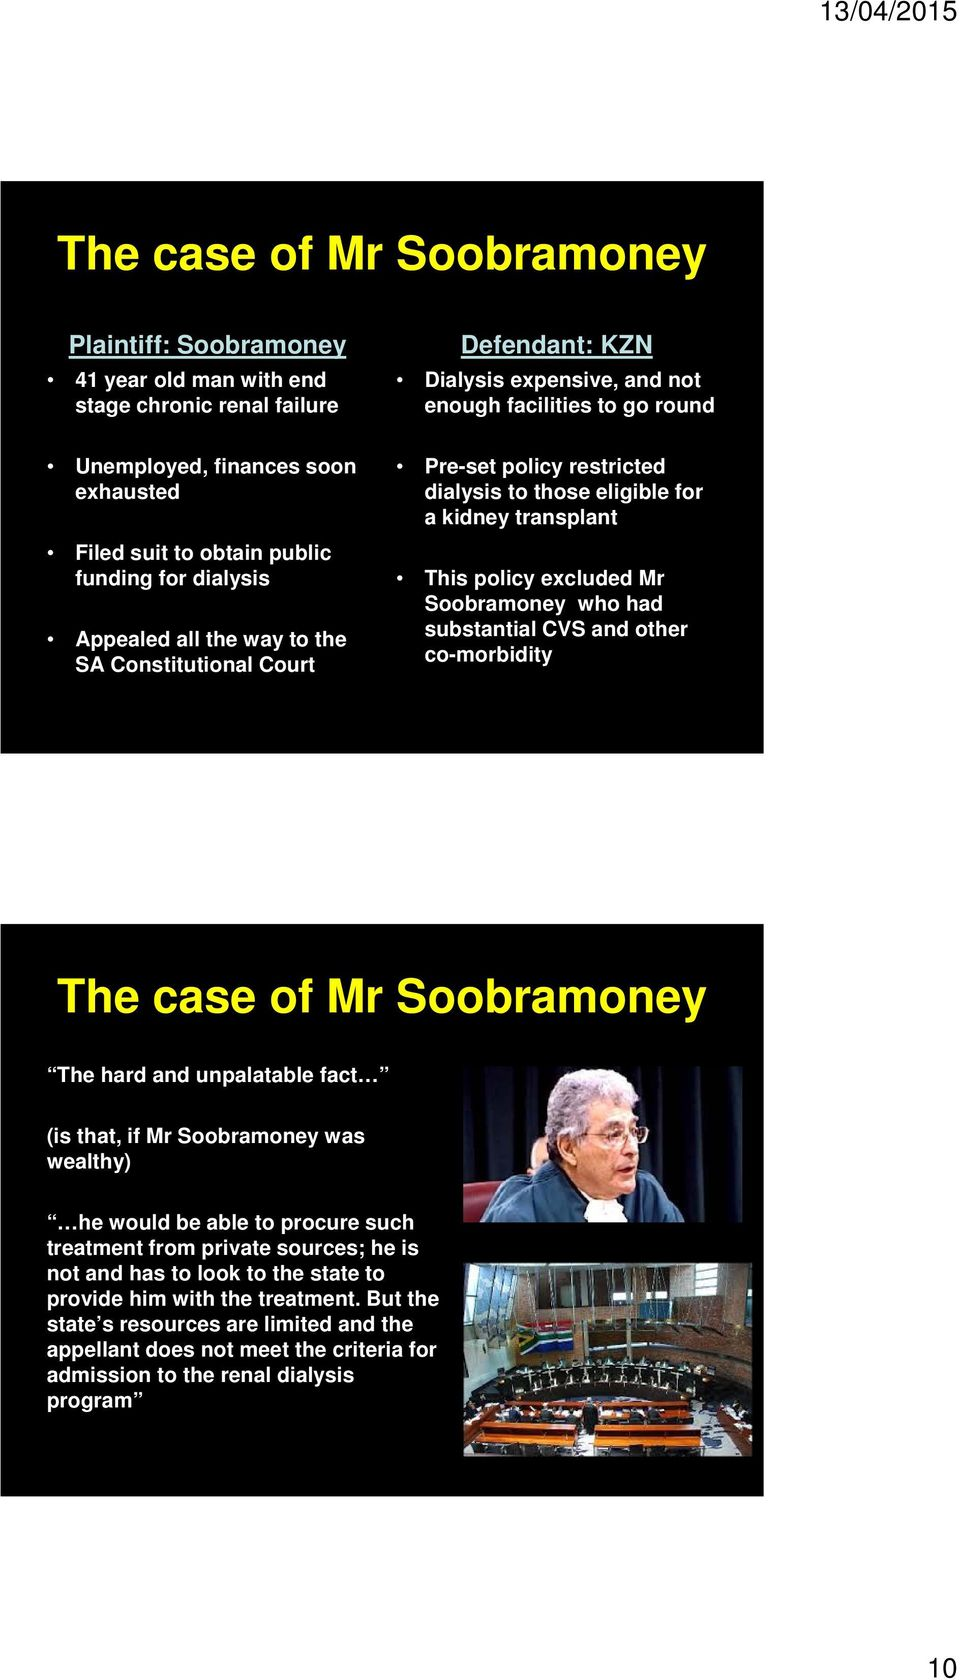 policy excluded Mr Soobramoney who had substantial CVS and other co-morbidity The case of Mr Soobramoney The hard and unpalatable fact (is that, if Mr Soobramoney was wealthy) he would be able to